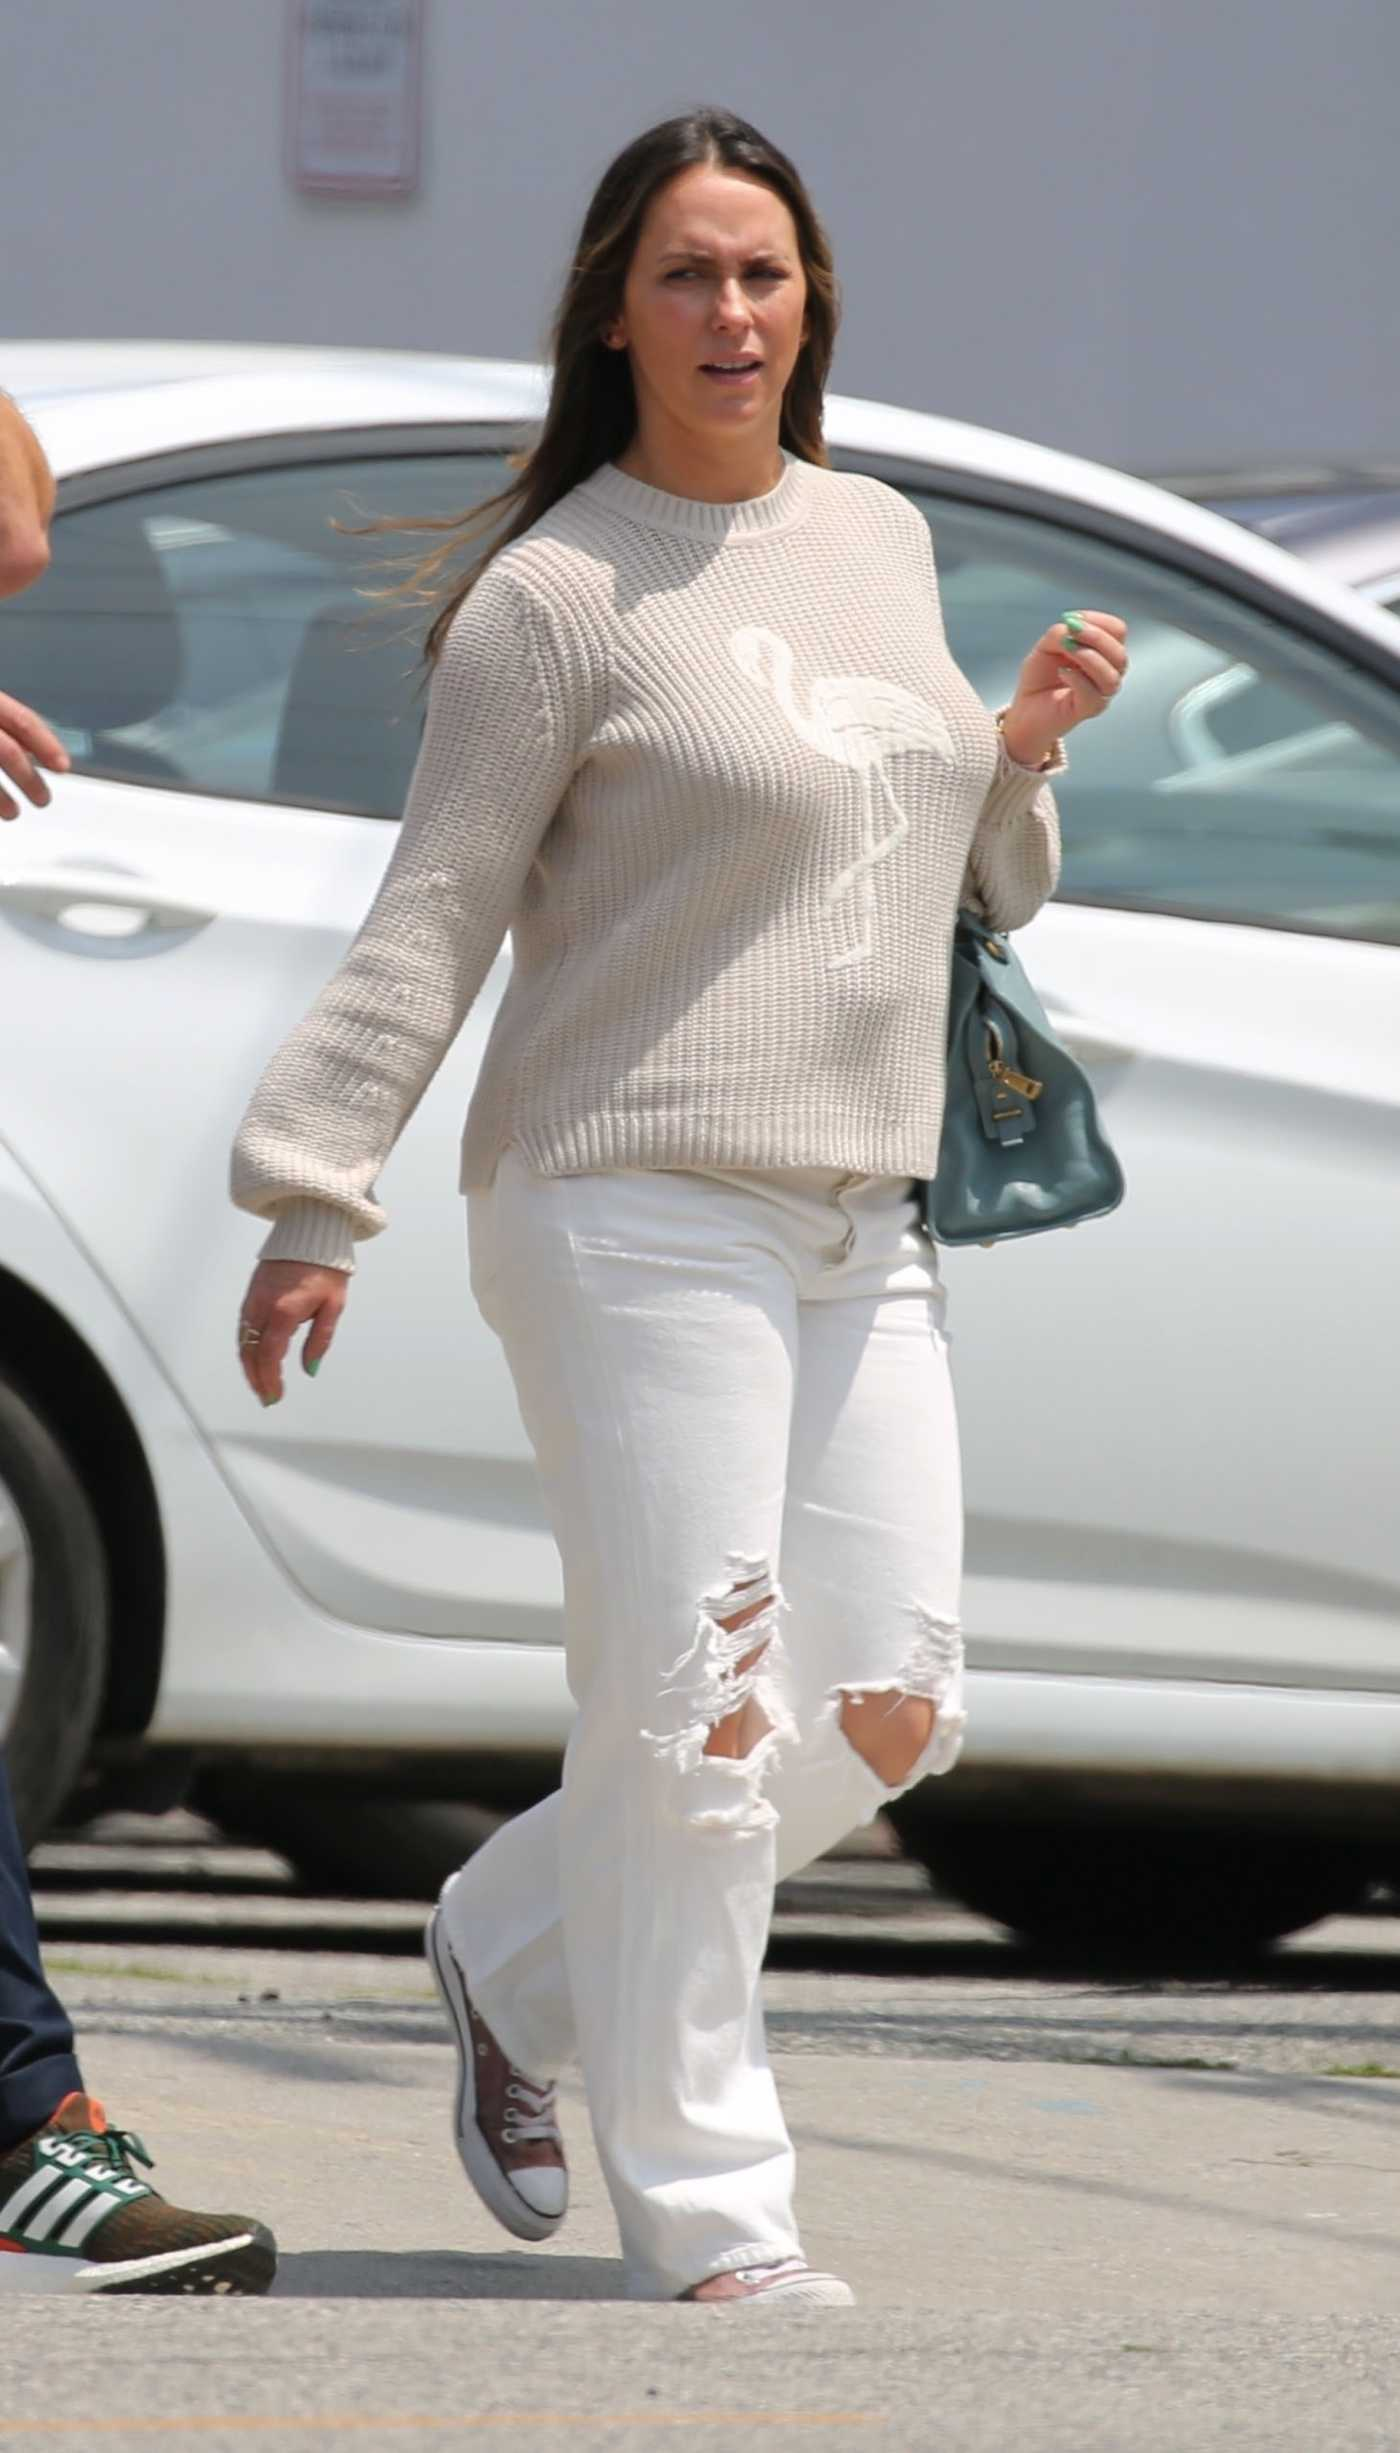 Jennifer Love Hewitt in a White Ripped Jeans Goes Shopping in Venice 05/31/2019